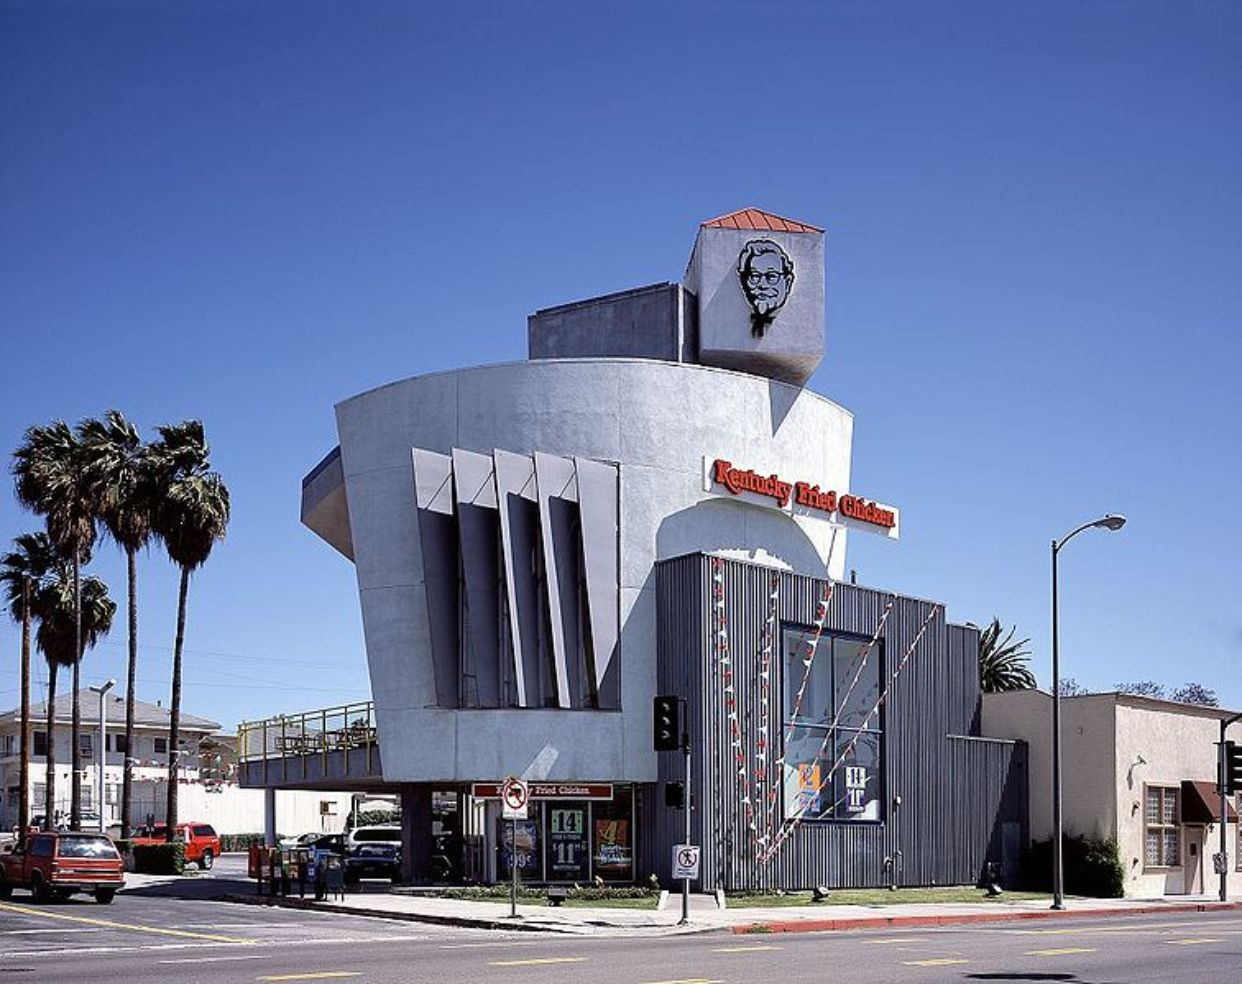 A futuristic Kentucky Friend Chicken in Los Angeles.